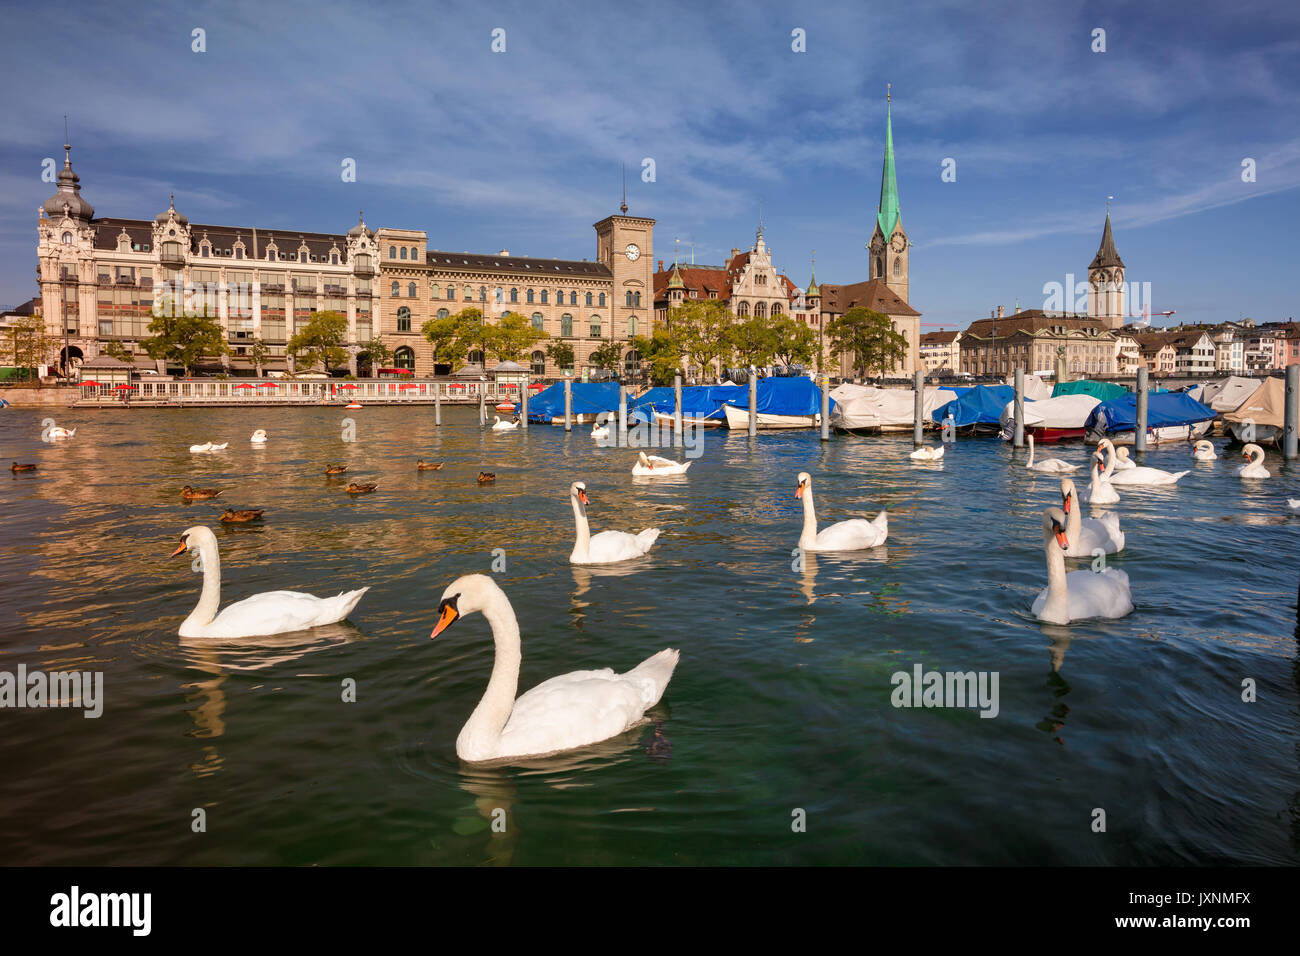 Zurich. Cityscape image of Zurich, Switzerland during sunny summer morning. - Stock Image